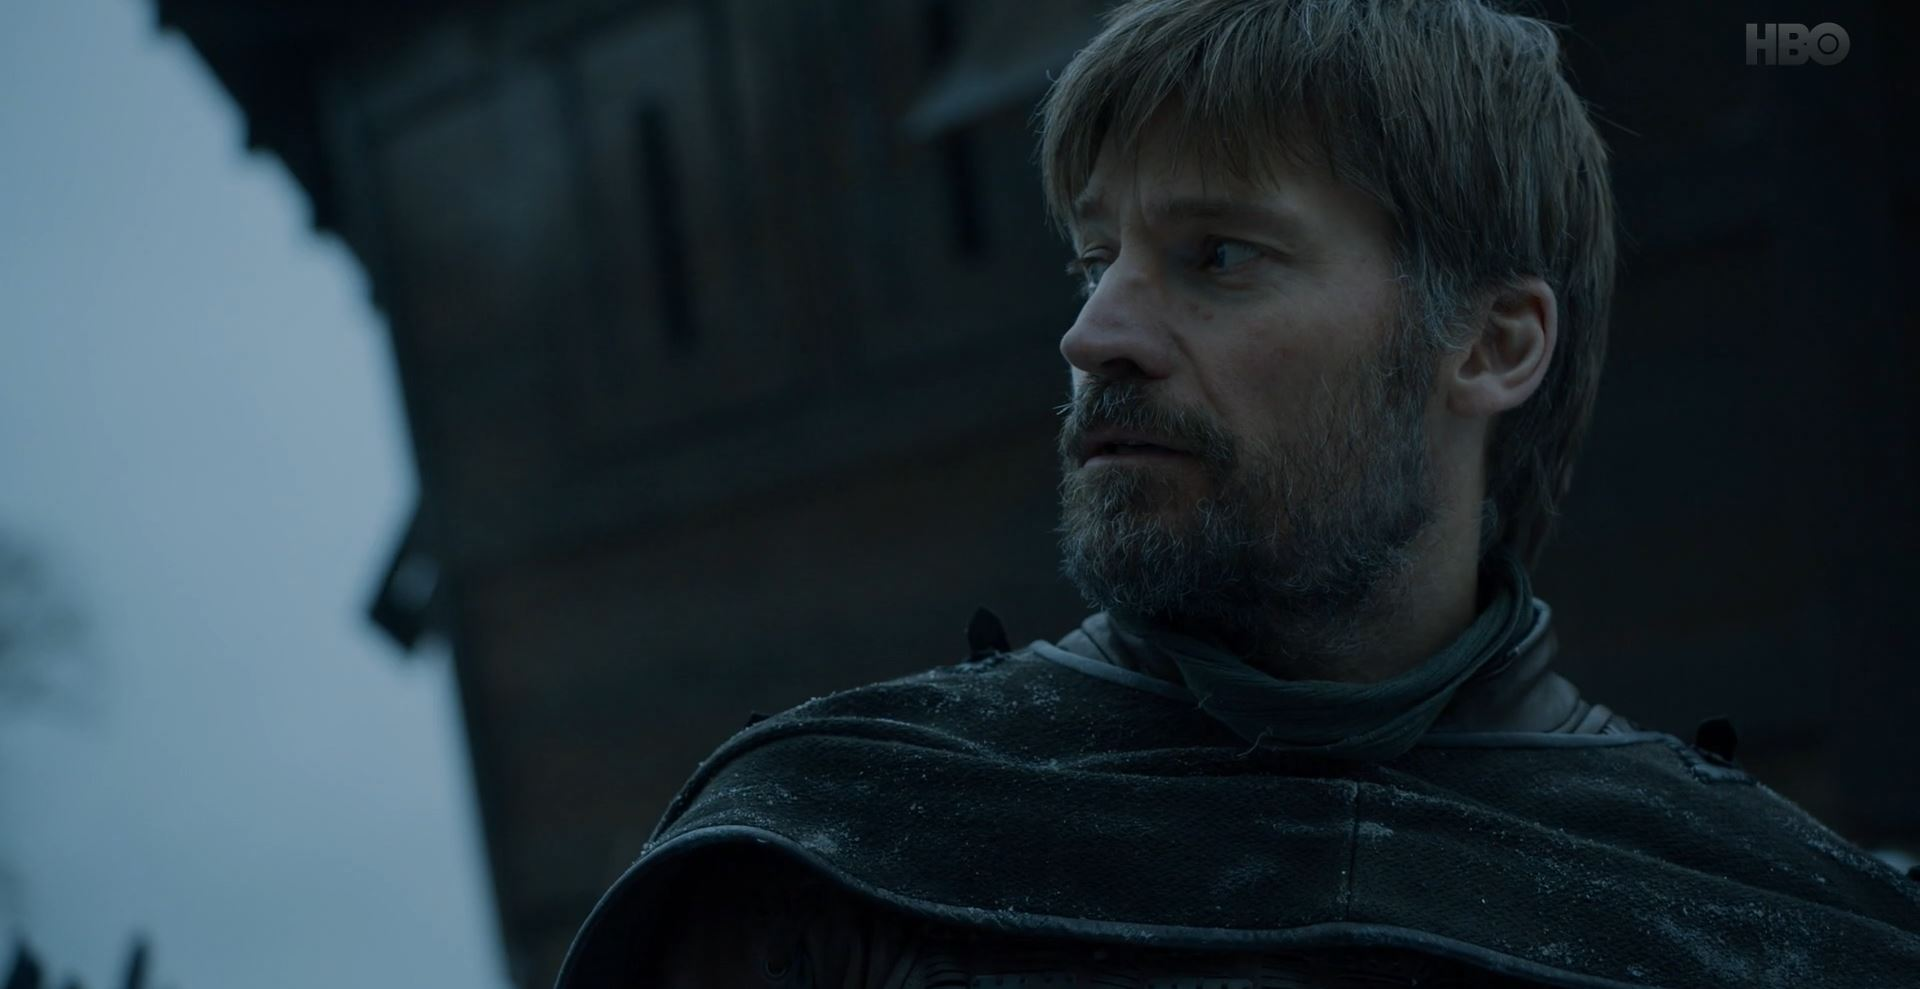 Game of Thrones S08E02 A Knight of the Seven Kingdoms Review - Jaime spots Brienne